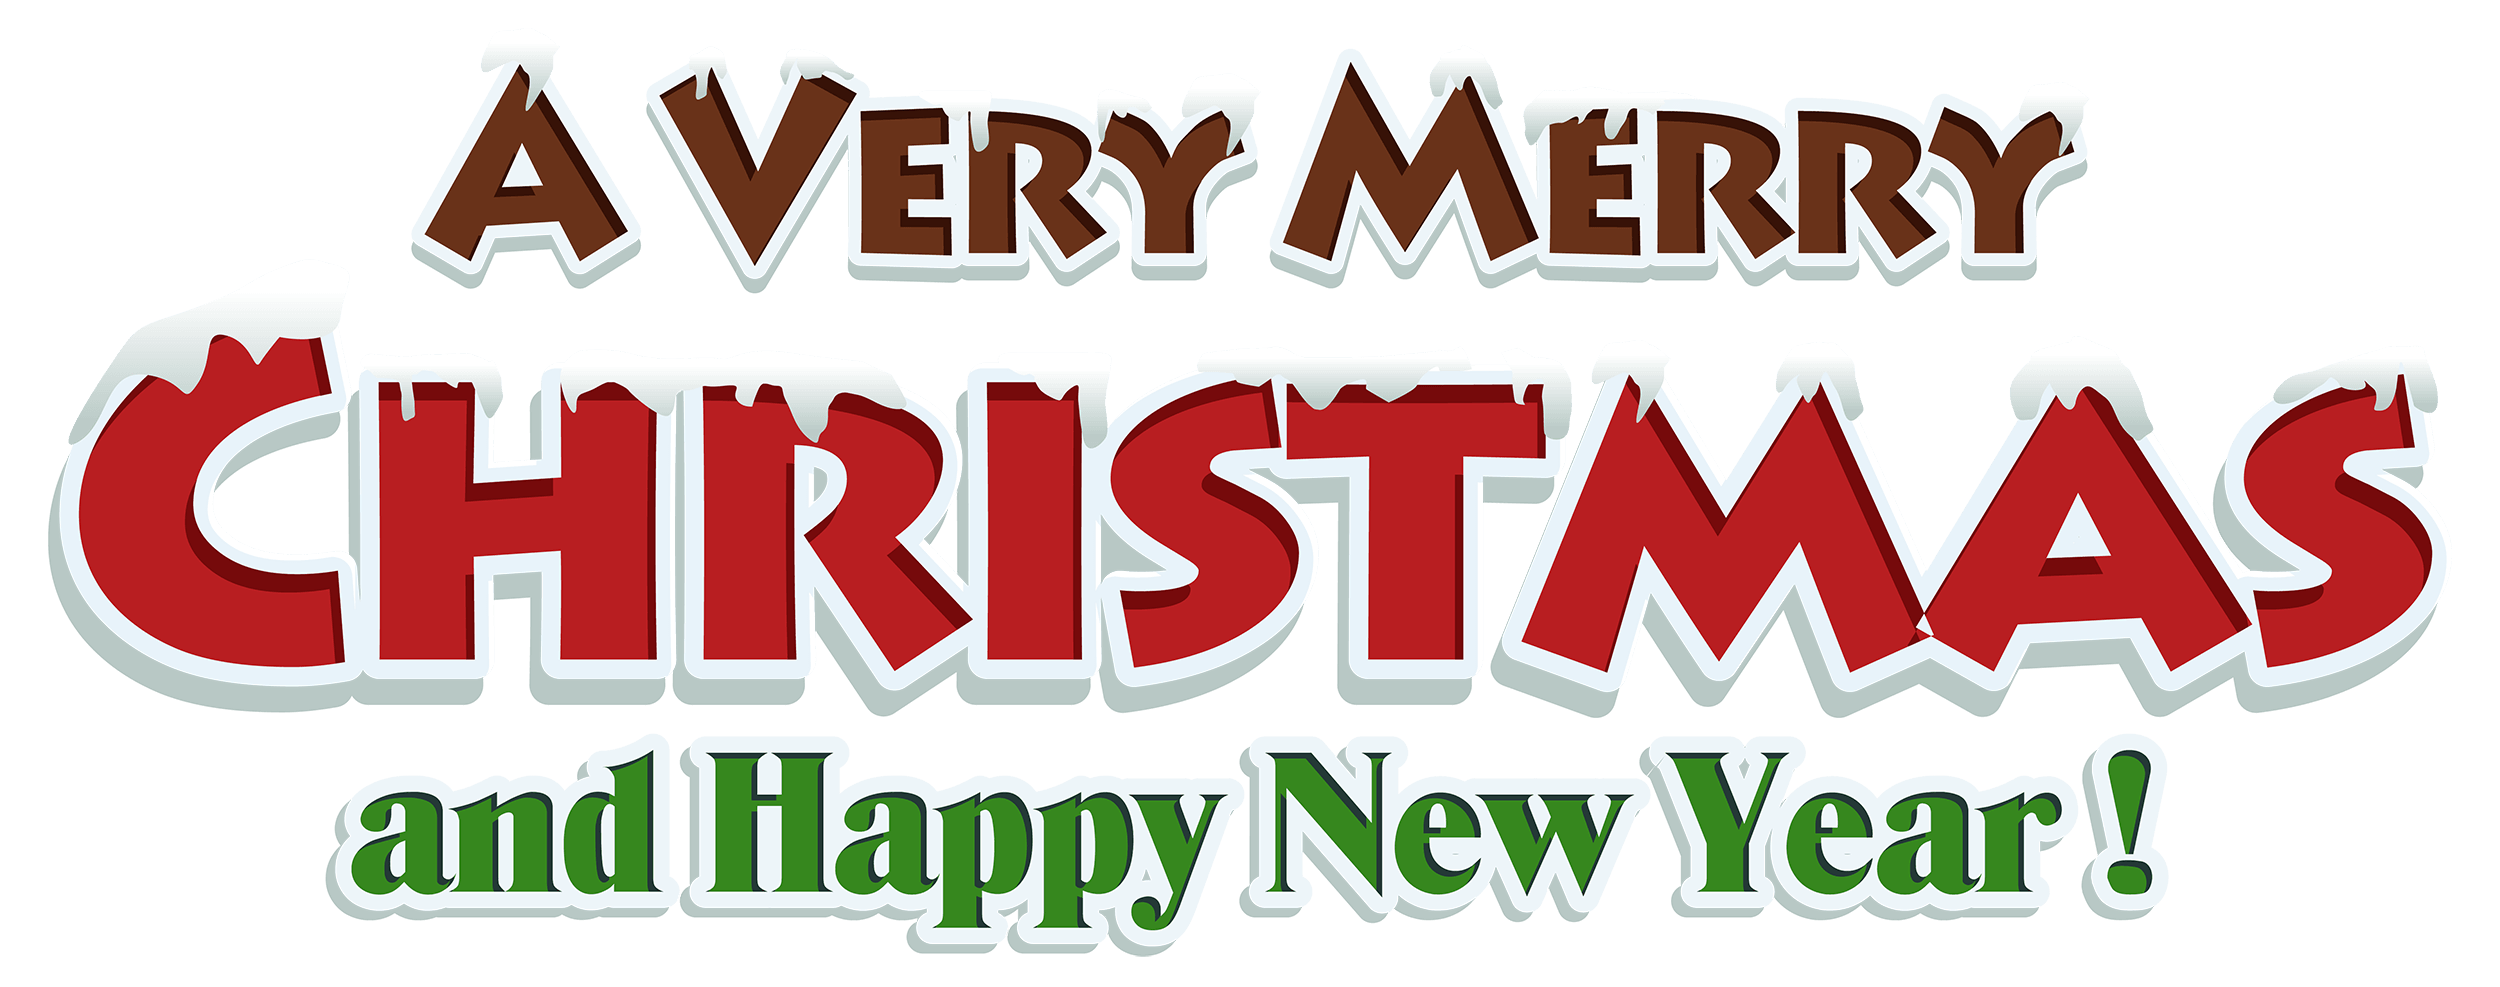 Free clipart merry christmas. Cute images and happy